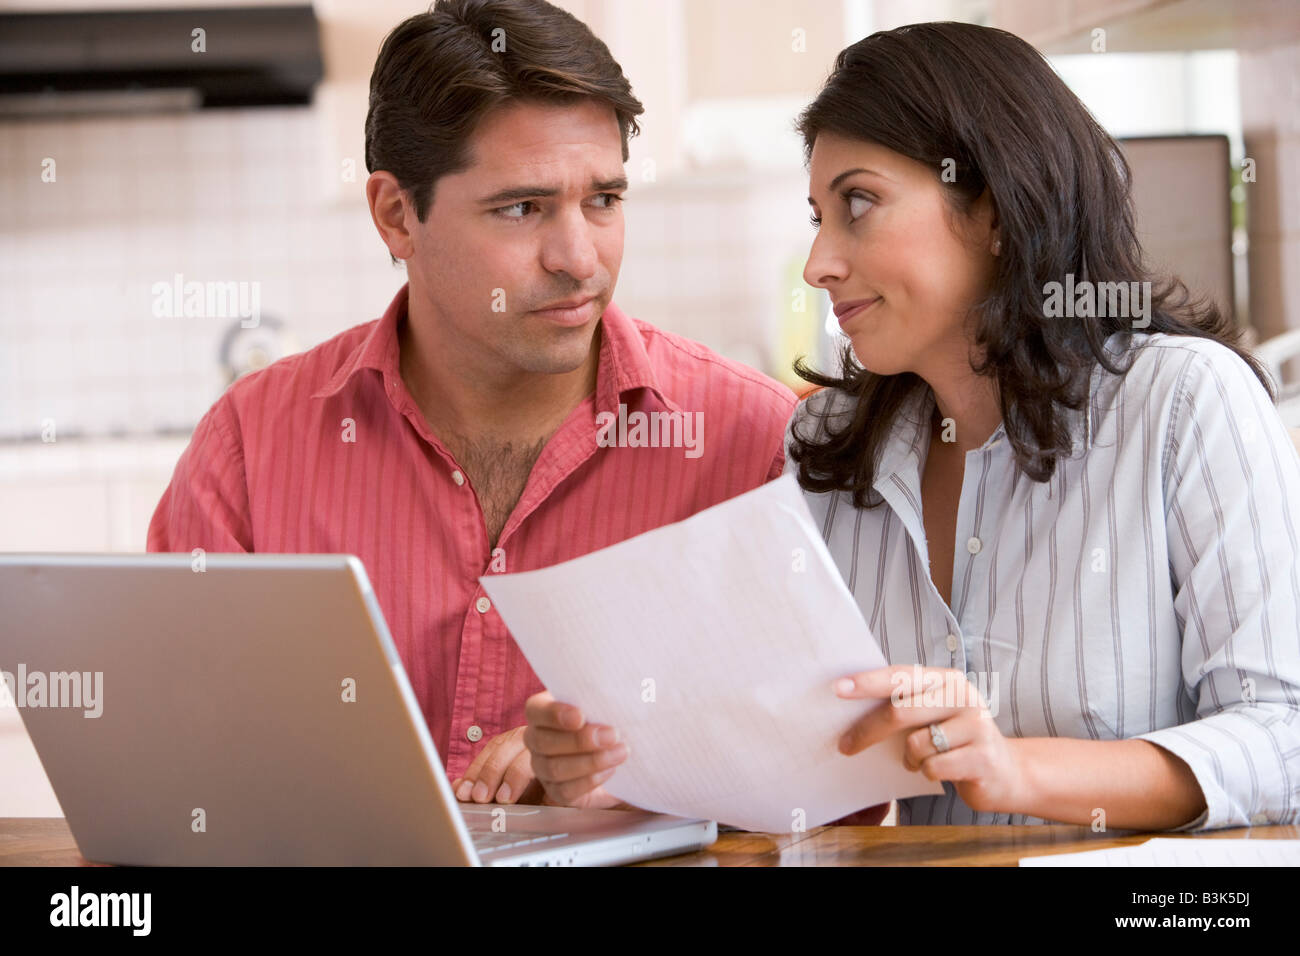 Couple in kitchen with paperwork using laptop looking unhappy - Stock Image